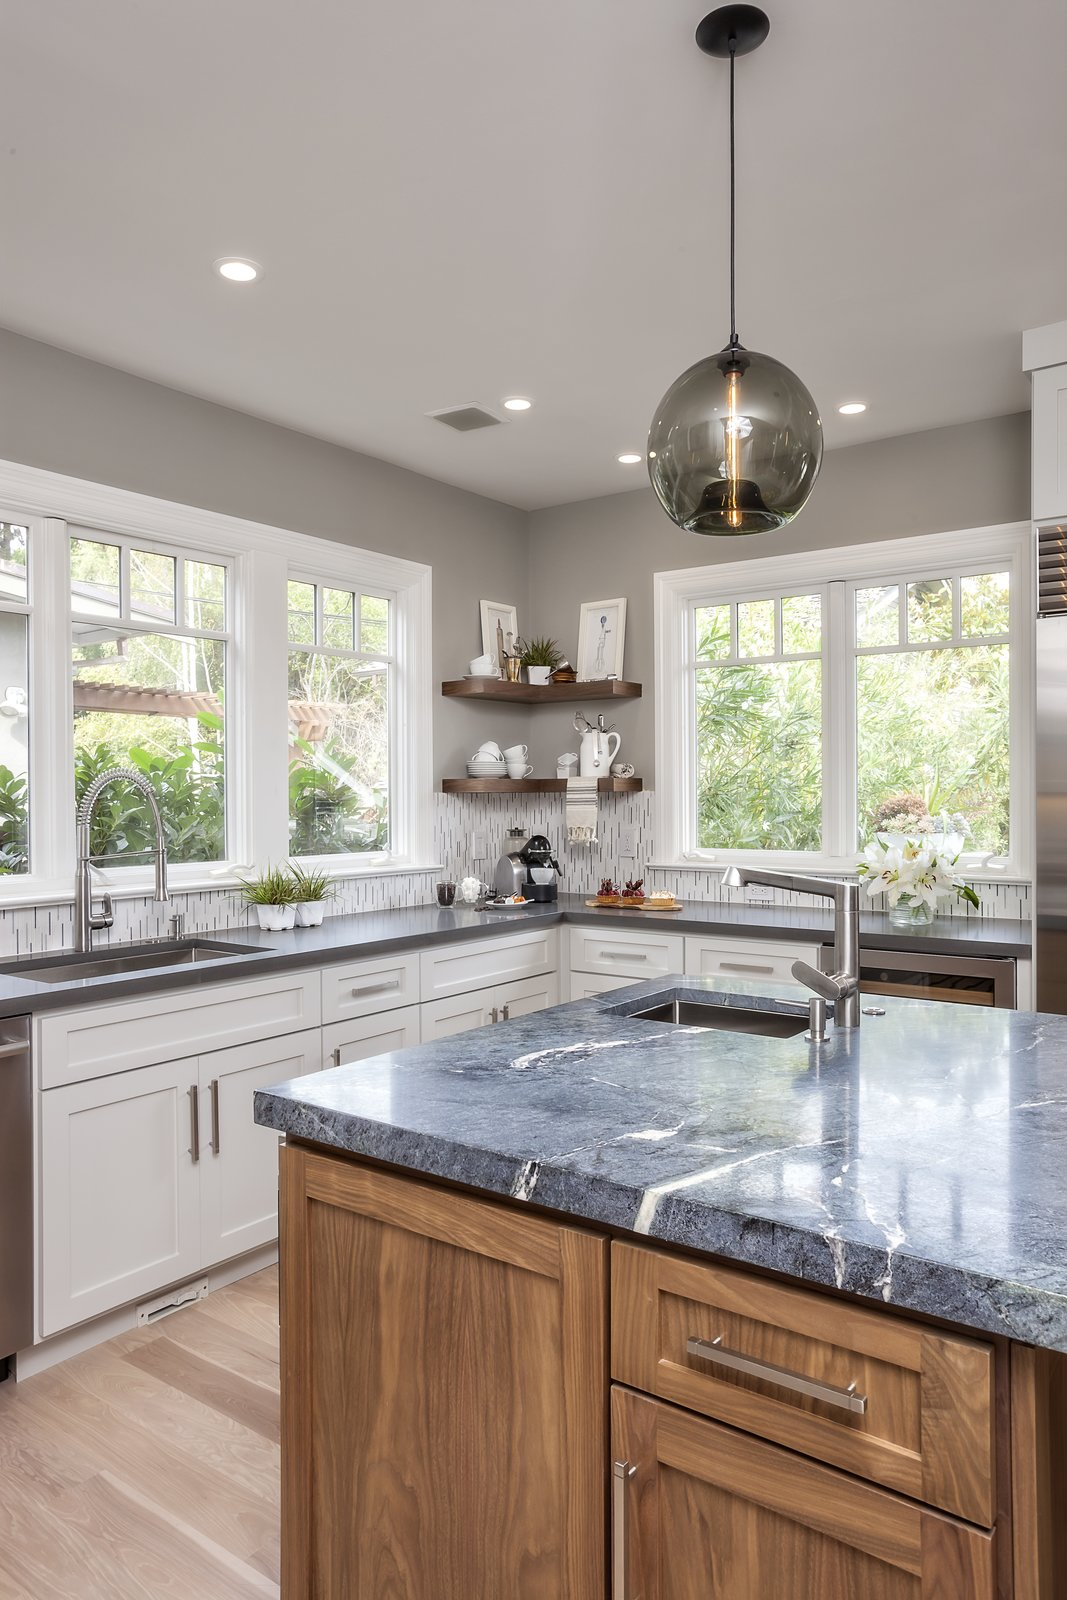 Photo 5 of 5 in Contemporary Kitchen Island Pendants Spotted in California Home